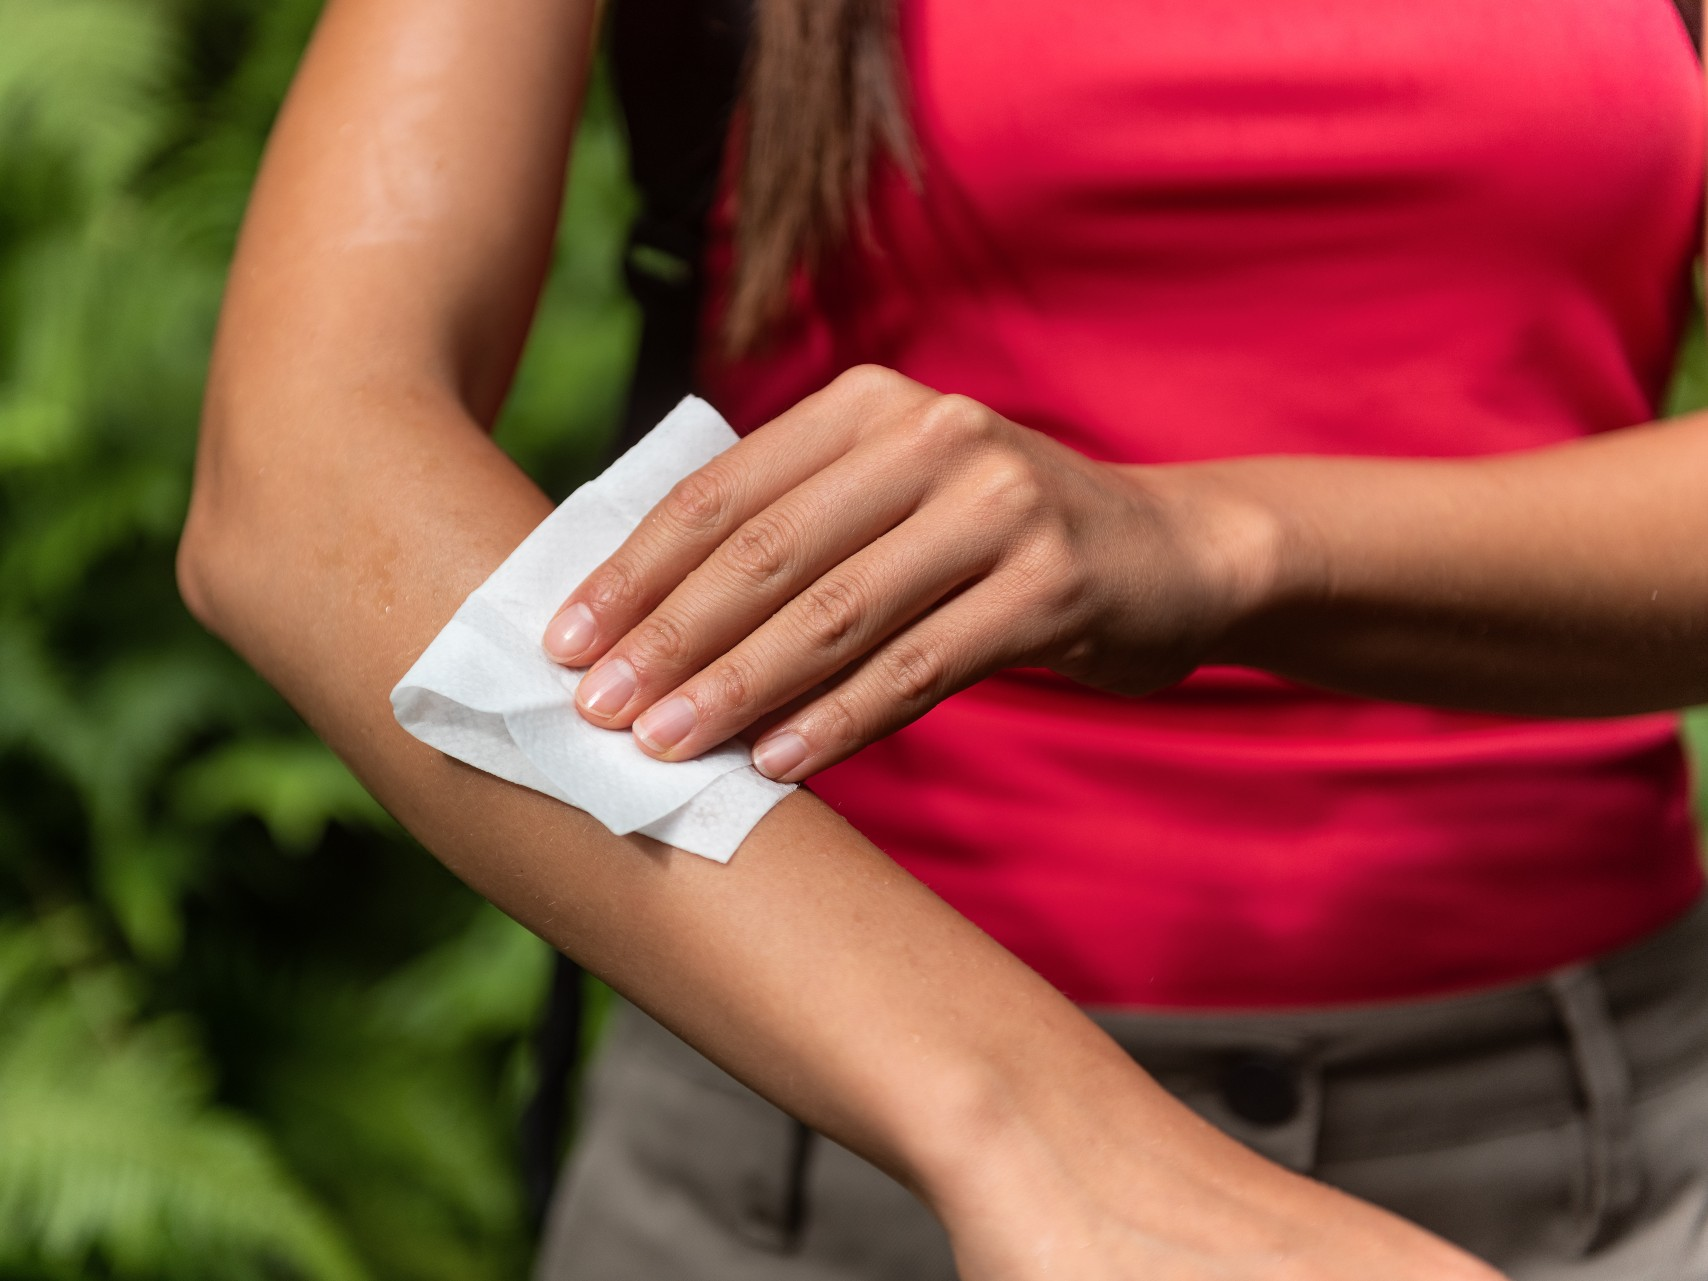 An image depicting insect repellent wipes, we also offer suncream sachets as well.